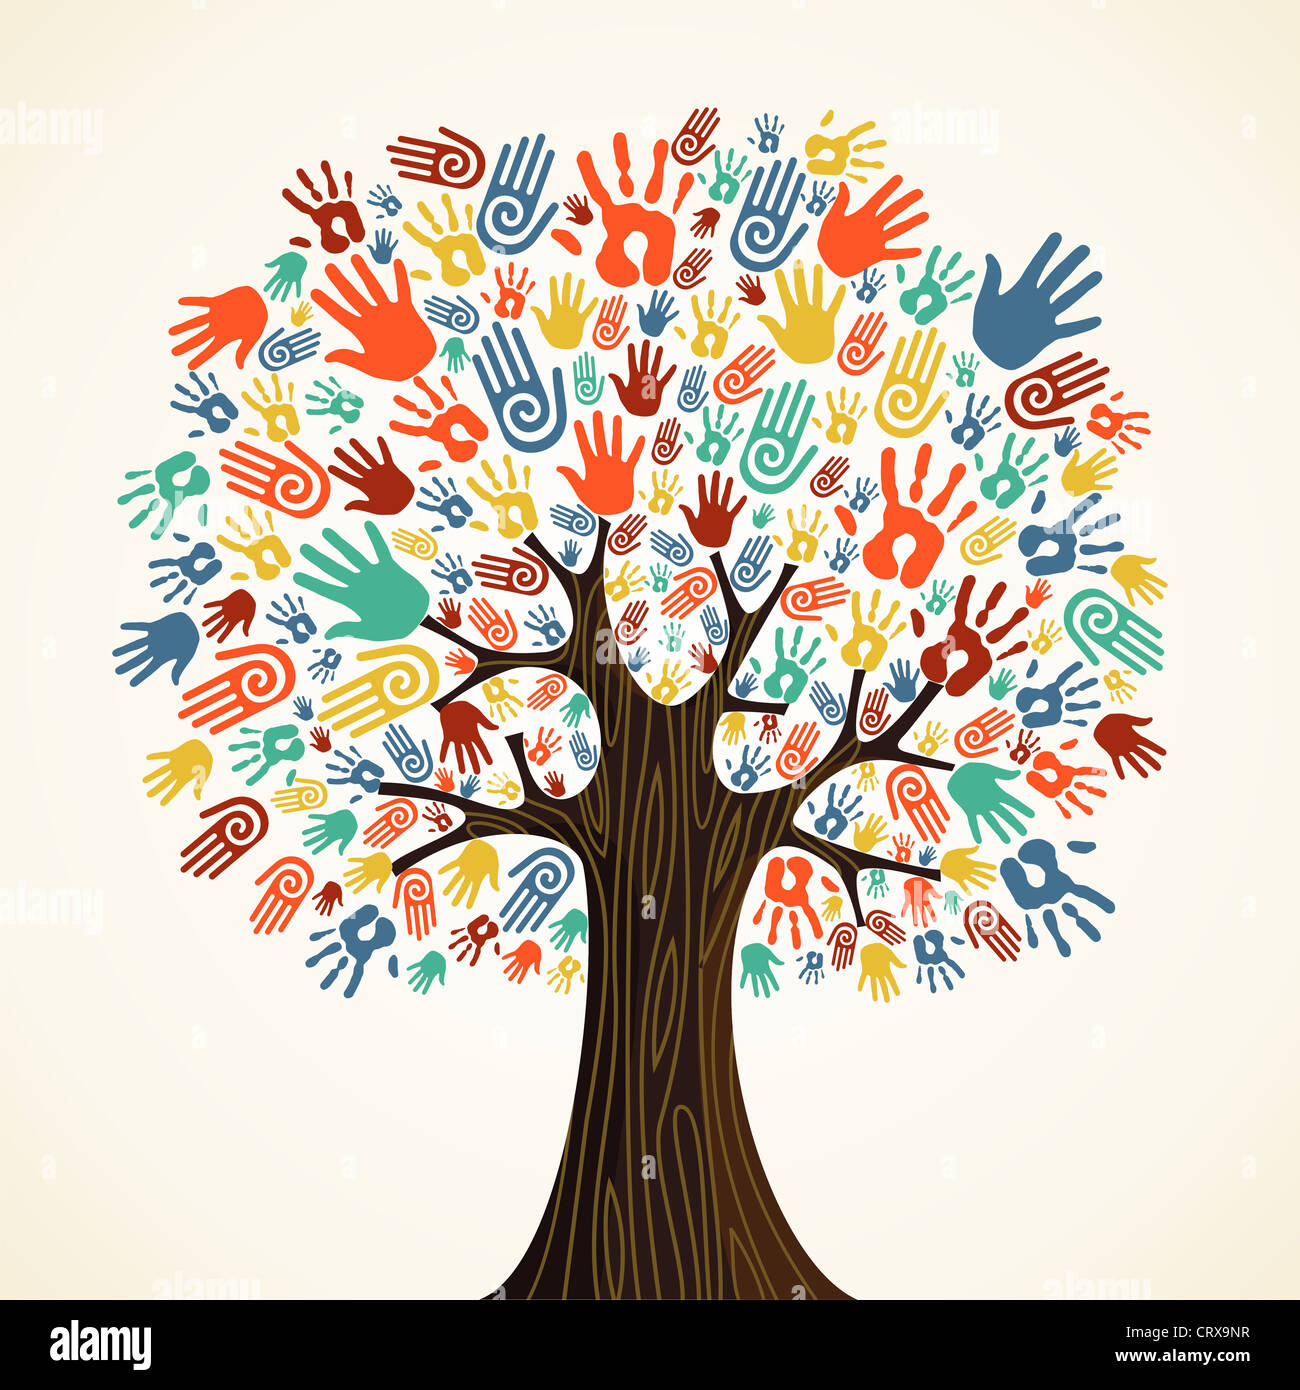 Isolated diversity tree hands illustration. Vector file layered for easy manipulation and custom coloring. Stock Foto